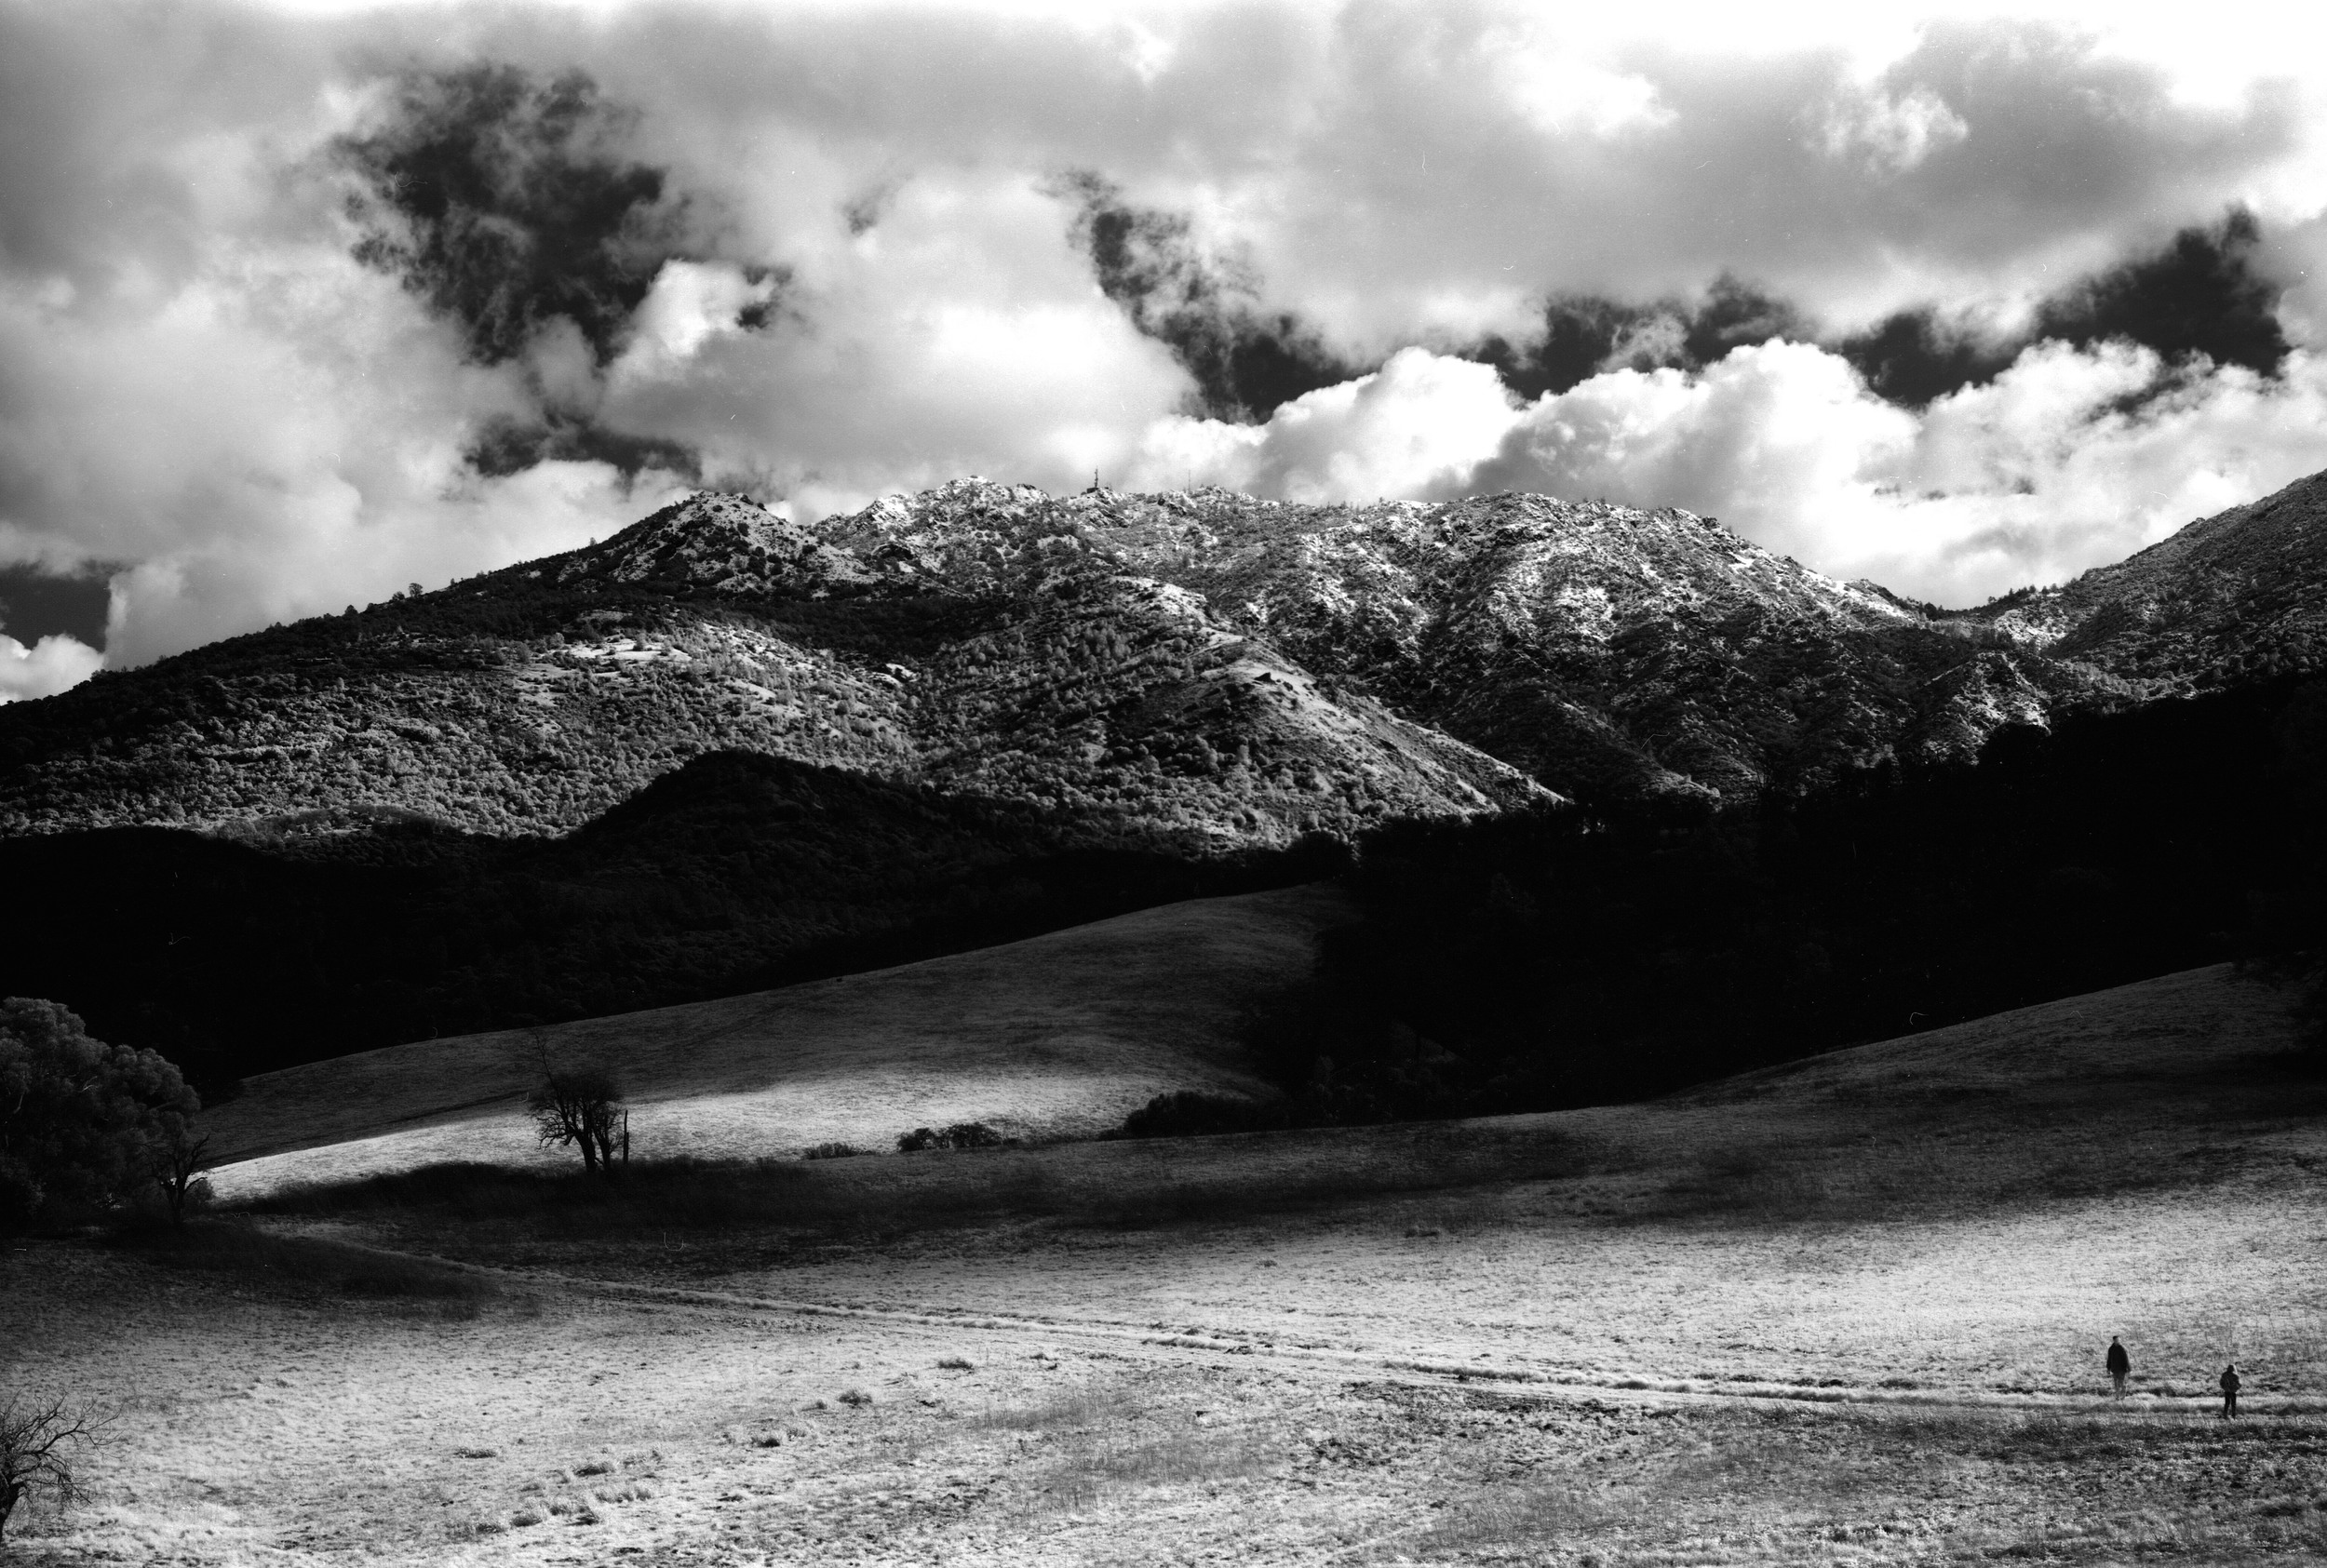 Clearing Winter Storm over Mt Diablo, February 2011 Graflex 2x3 Speed Graphic, 105mm, Rollei IR 400